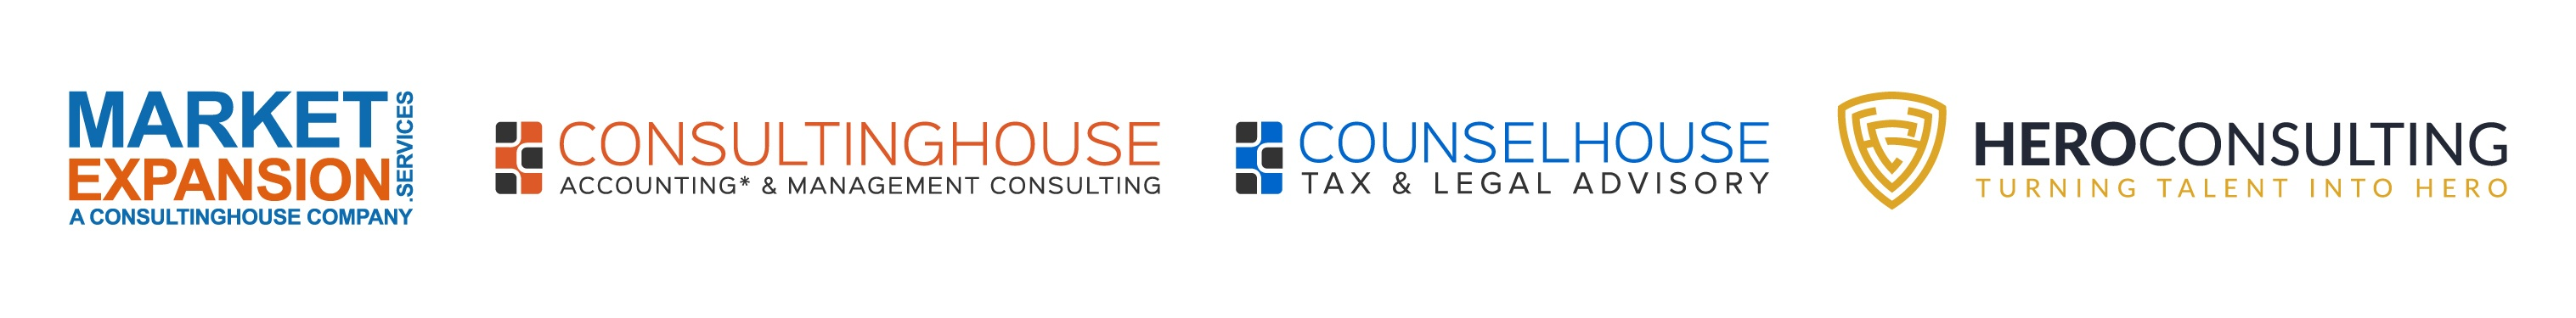 Consultinghouse-Counselhouse-Market-Expansion-HeroConsulting.jpg